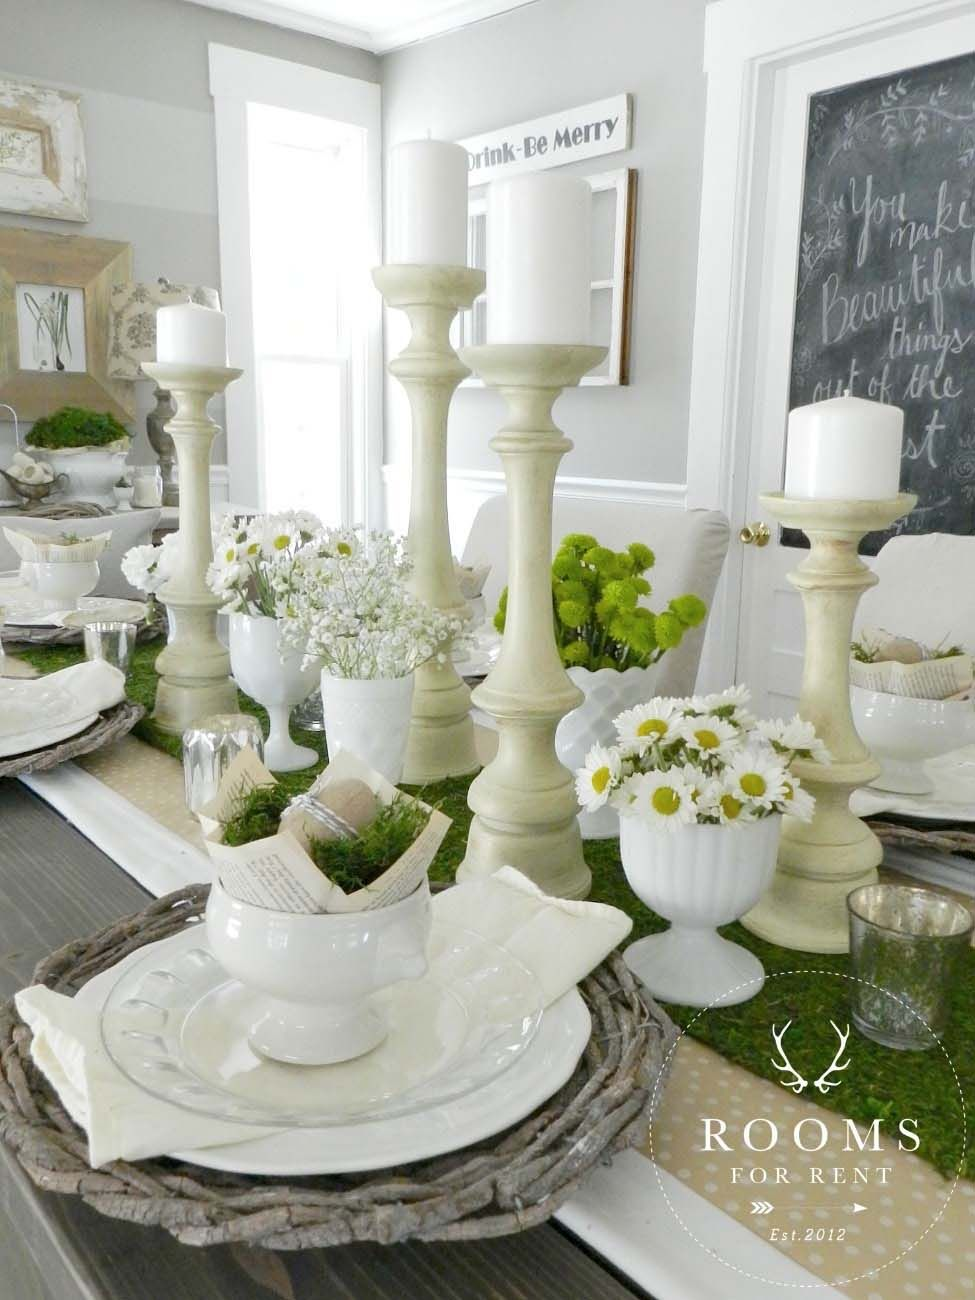 30 incredibly stylish and inspiring easter table centerpiece ideas rh pinterest com